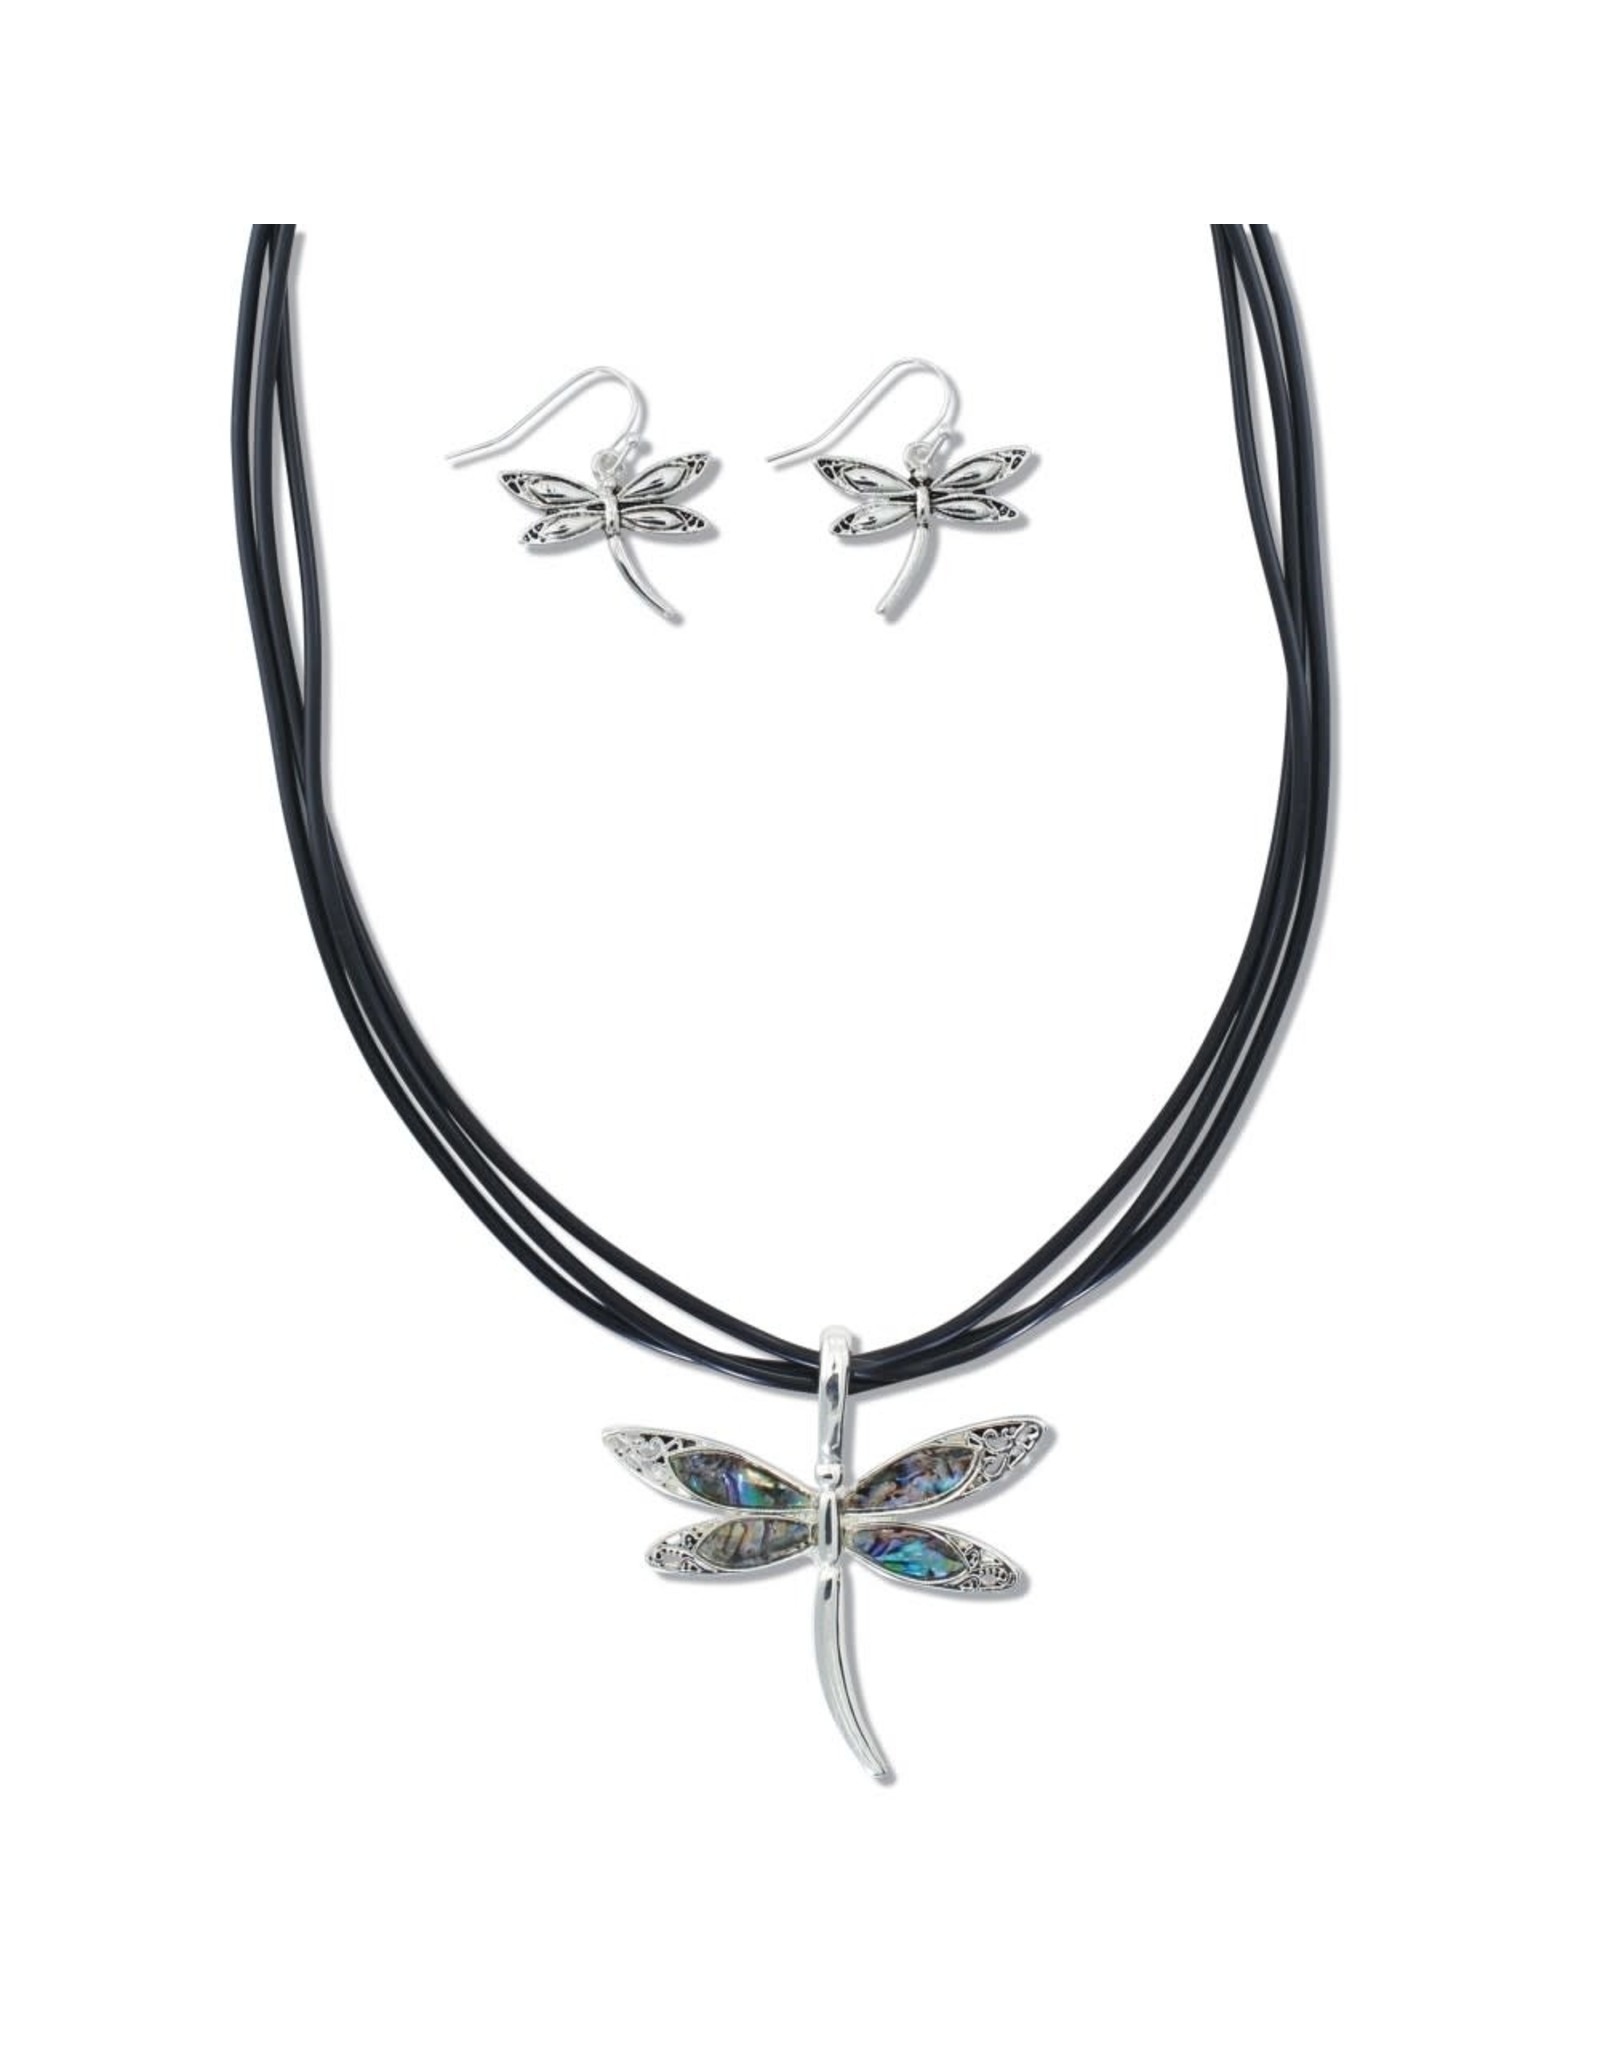 Periwinkle by Barlow Abalone Dragonfly Necklace Set